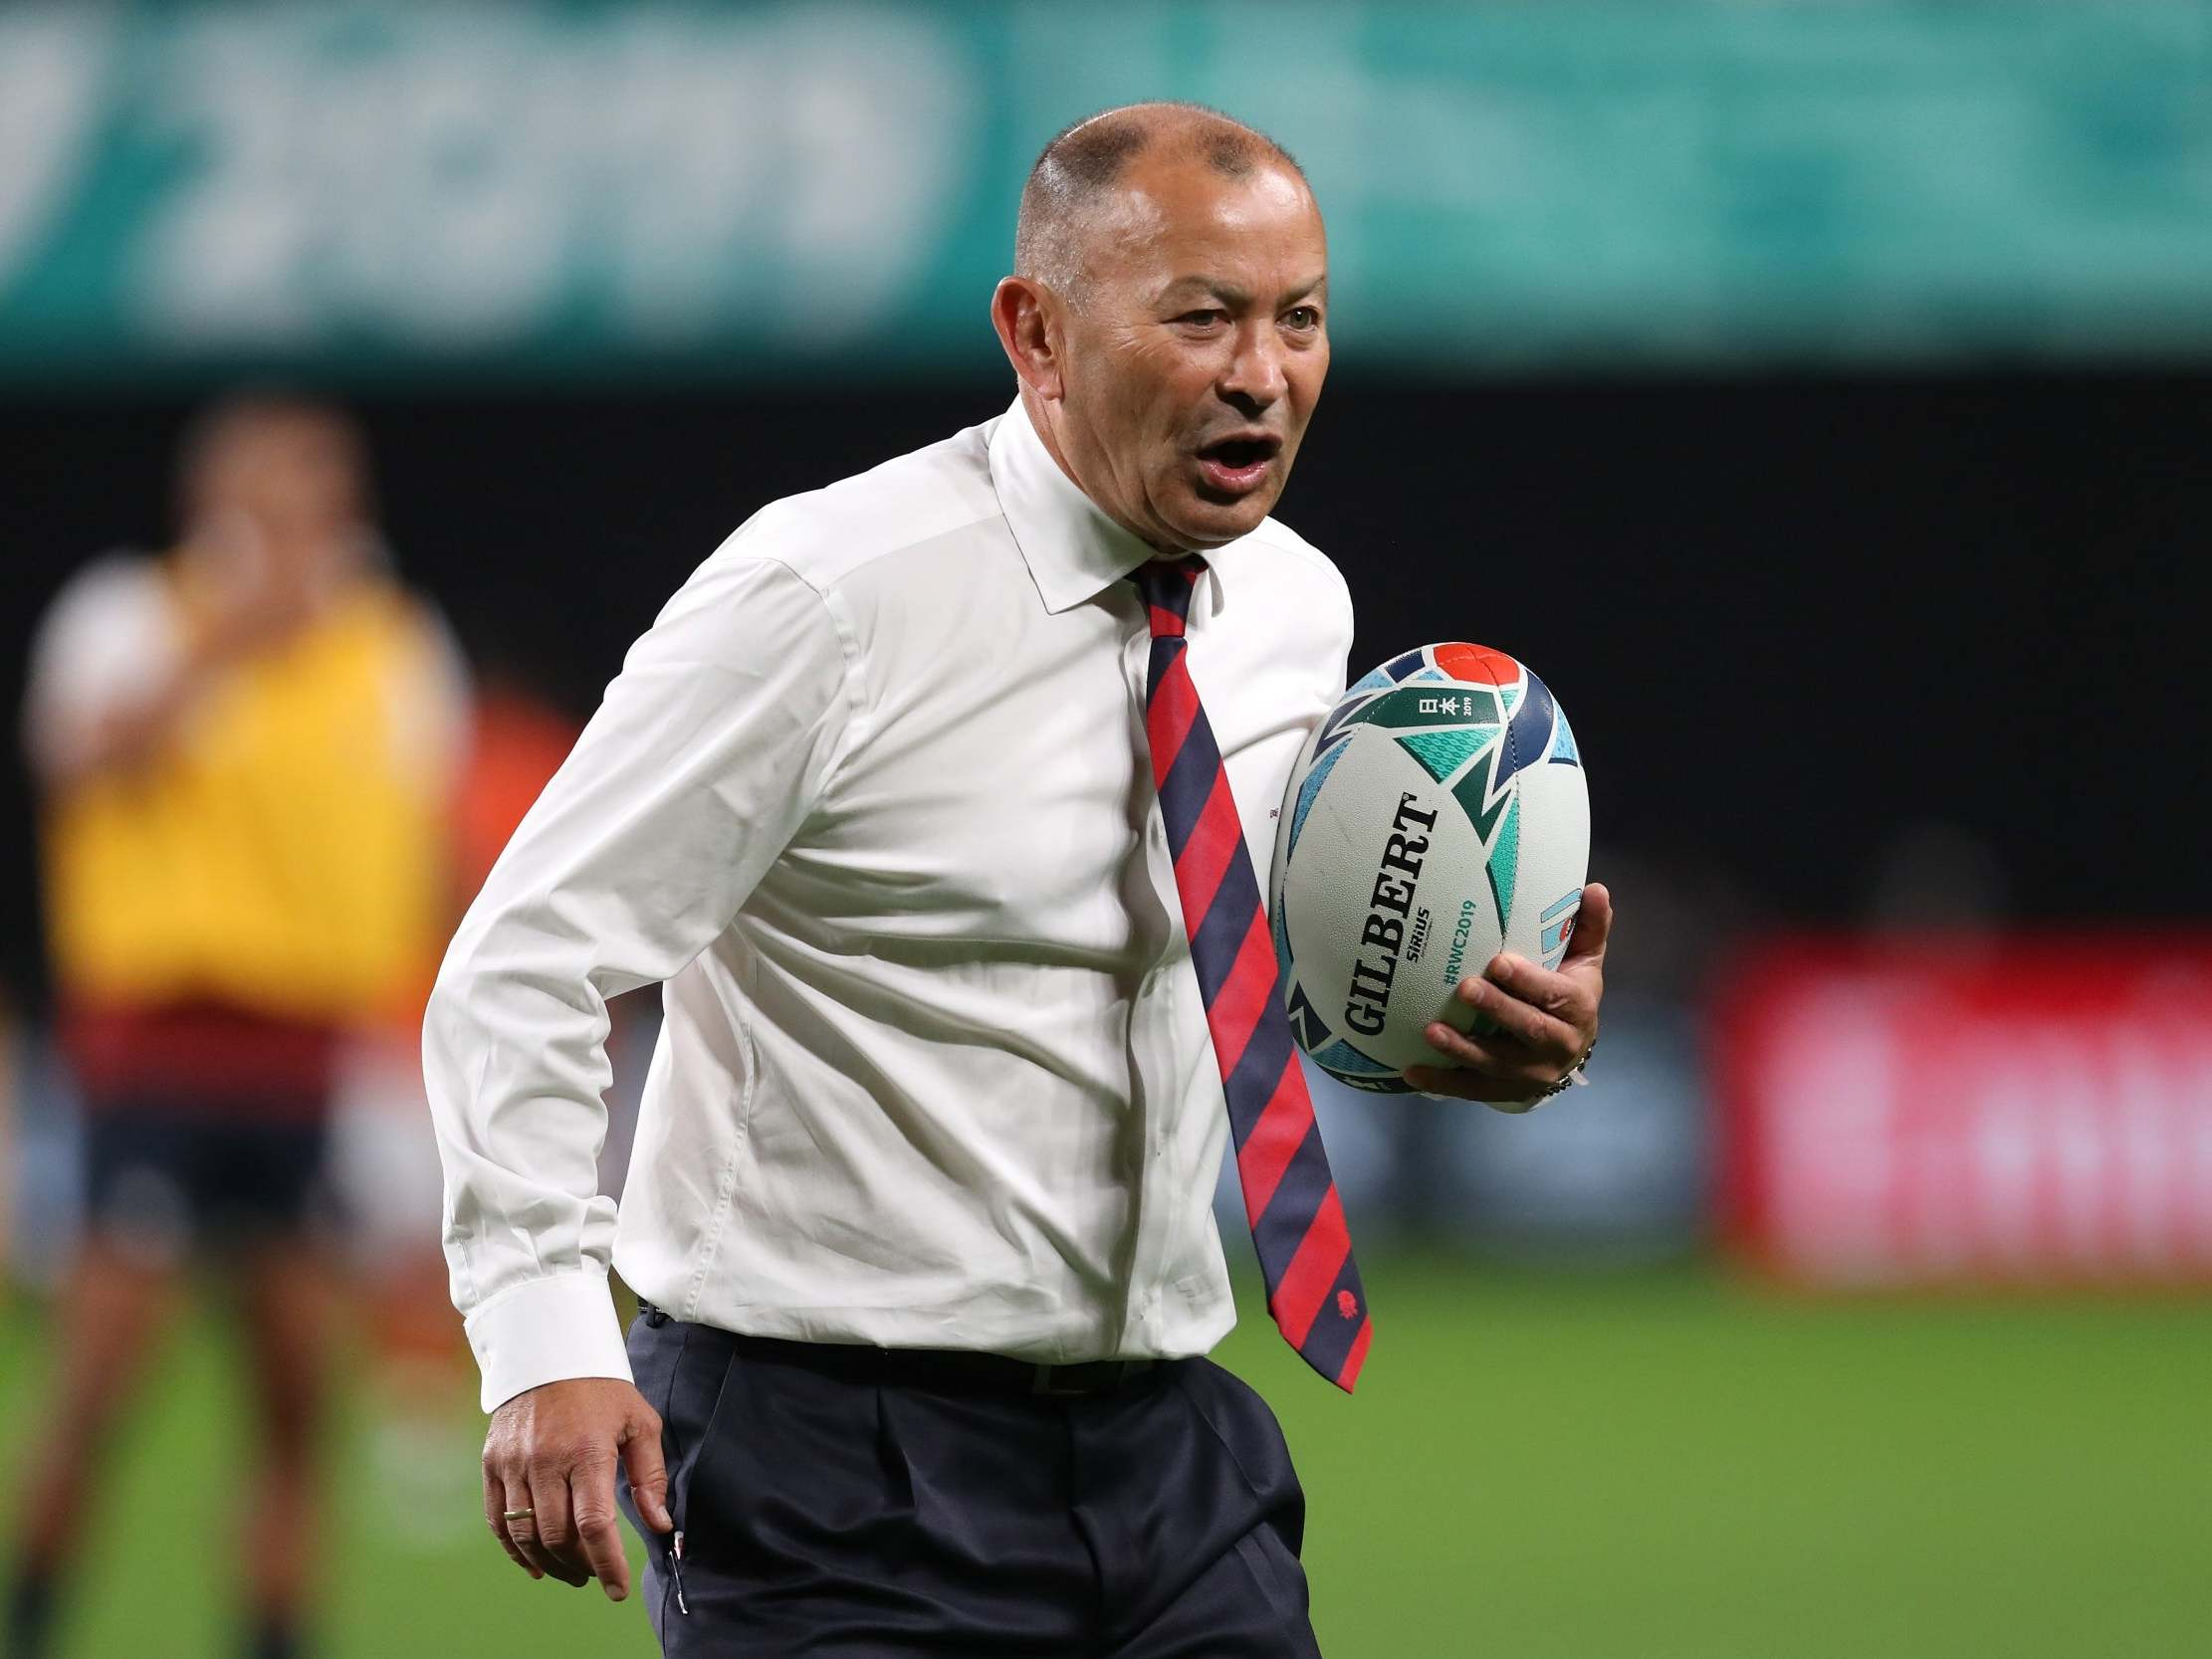 Rugby World Cup 2019: How to watch England vs USA online and TV channel, what time does it start